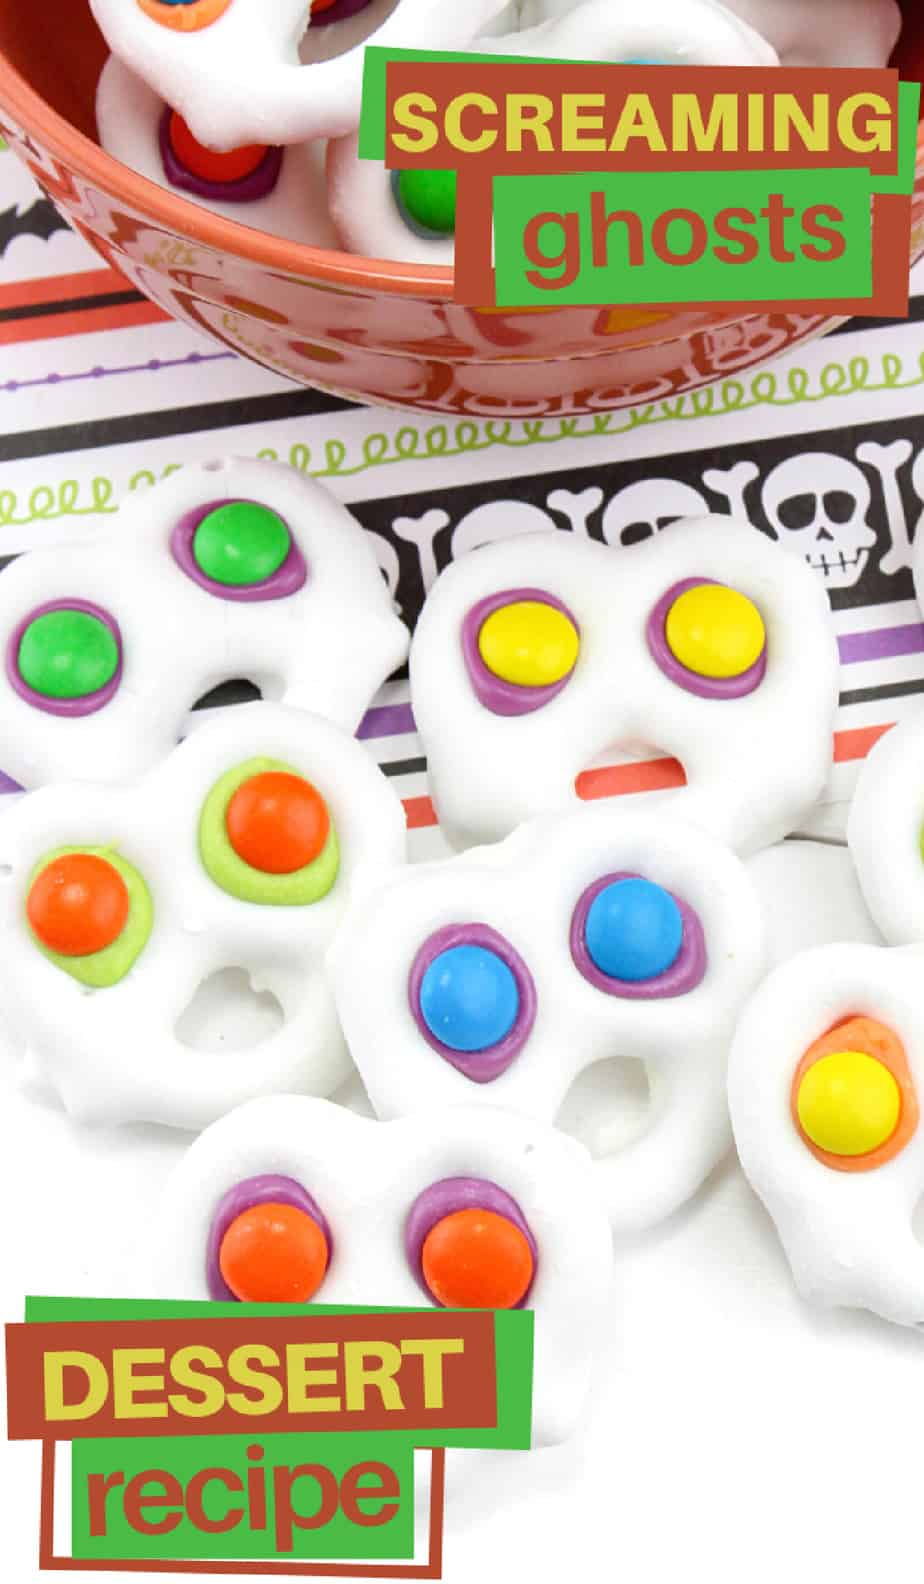 White chocolate covered pretzels with brightly colored eyes to look like screaming ghosts